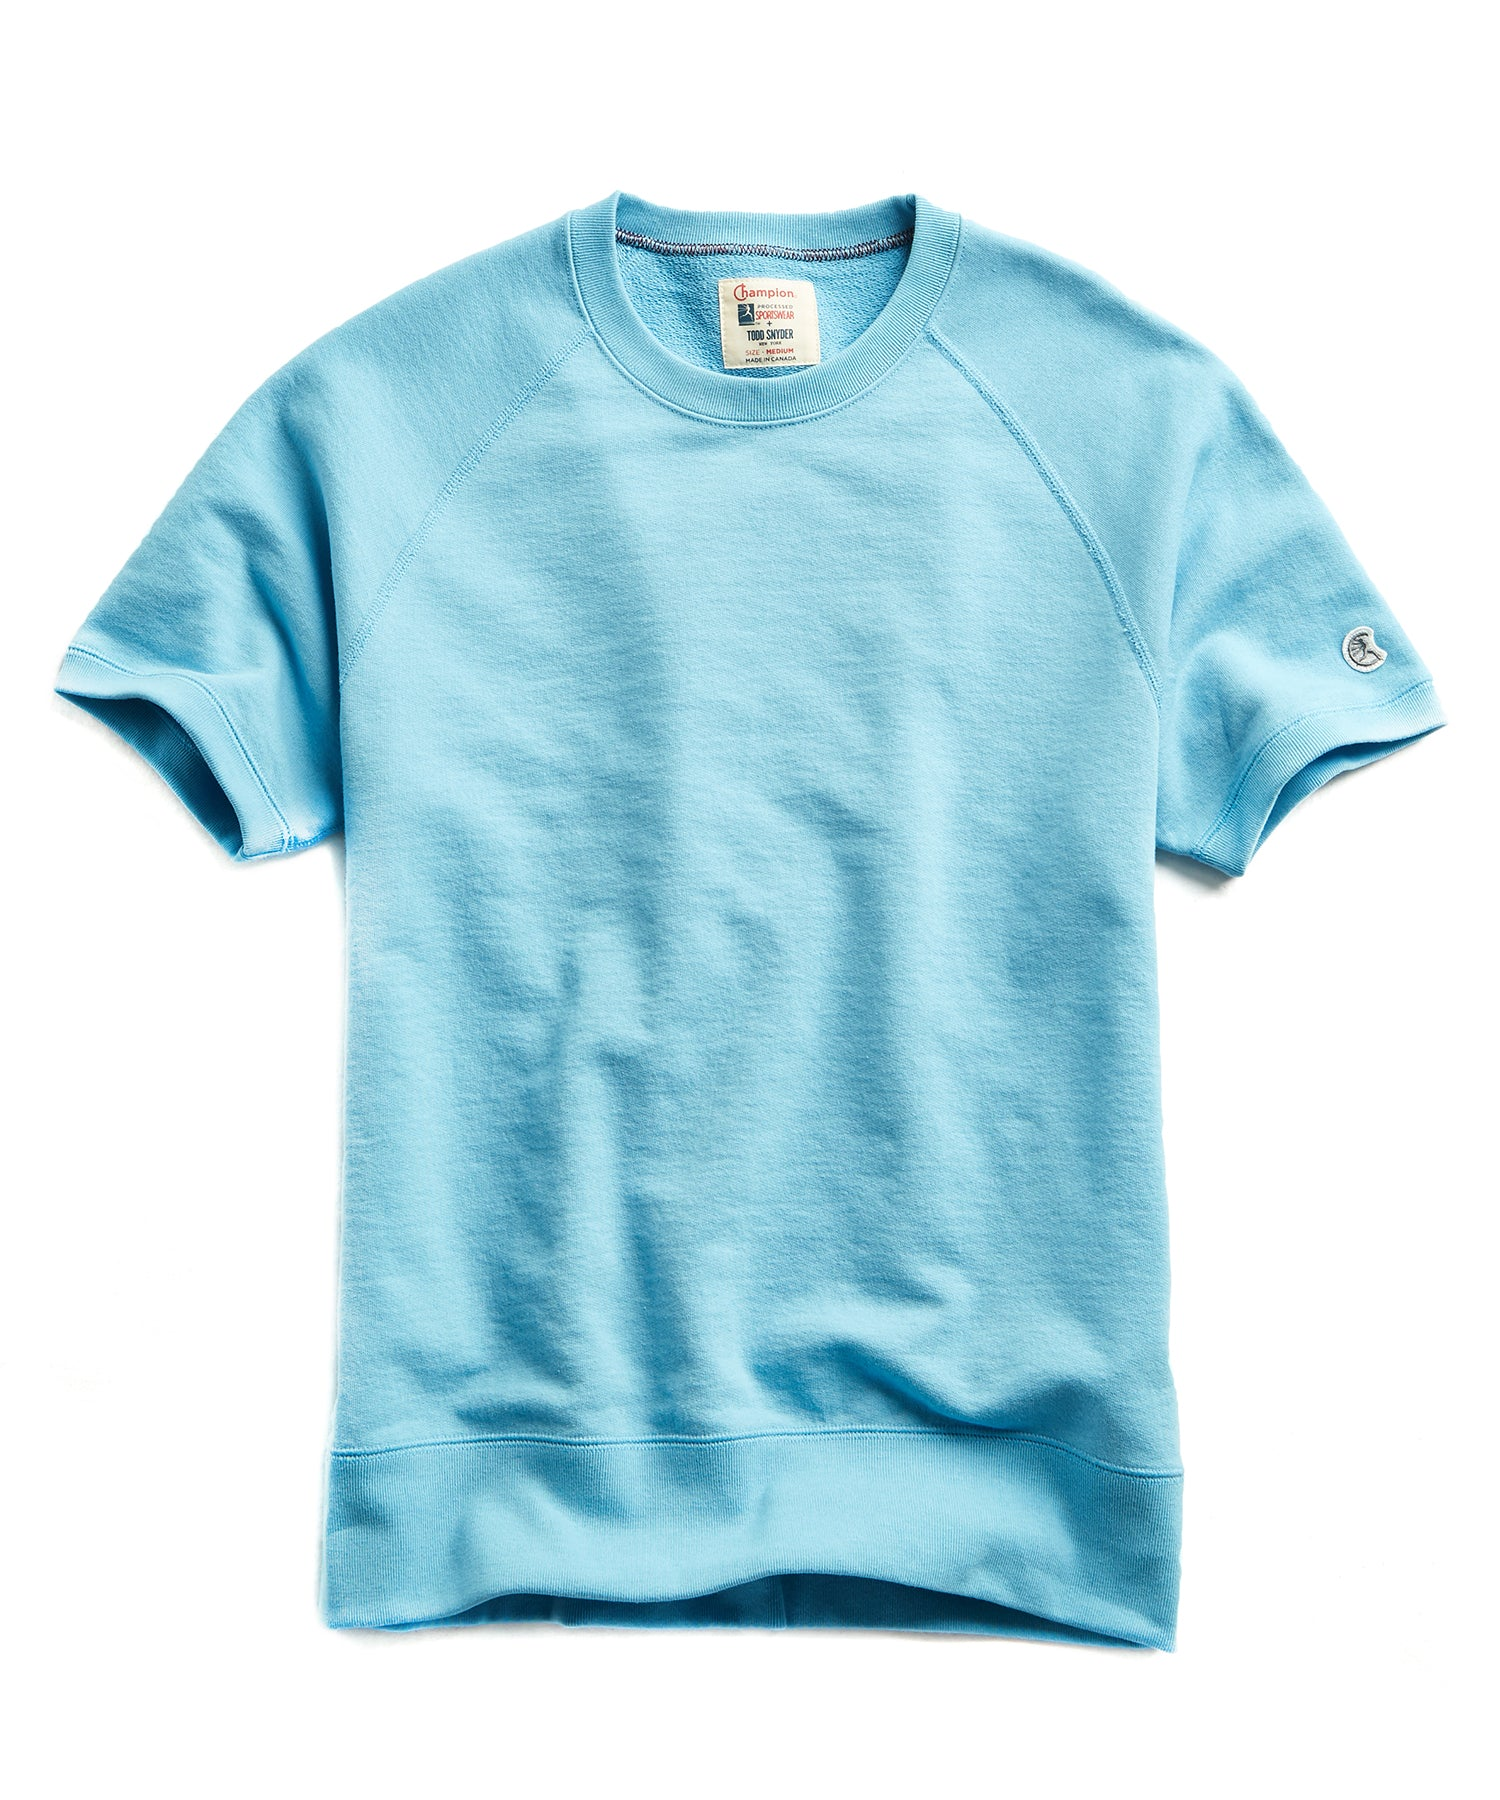 Terry Short Sleeve Sweatshirt in Pool Blue